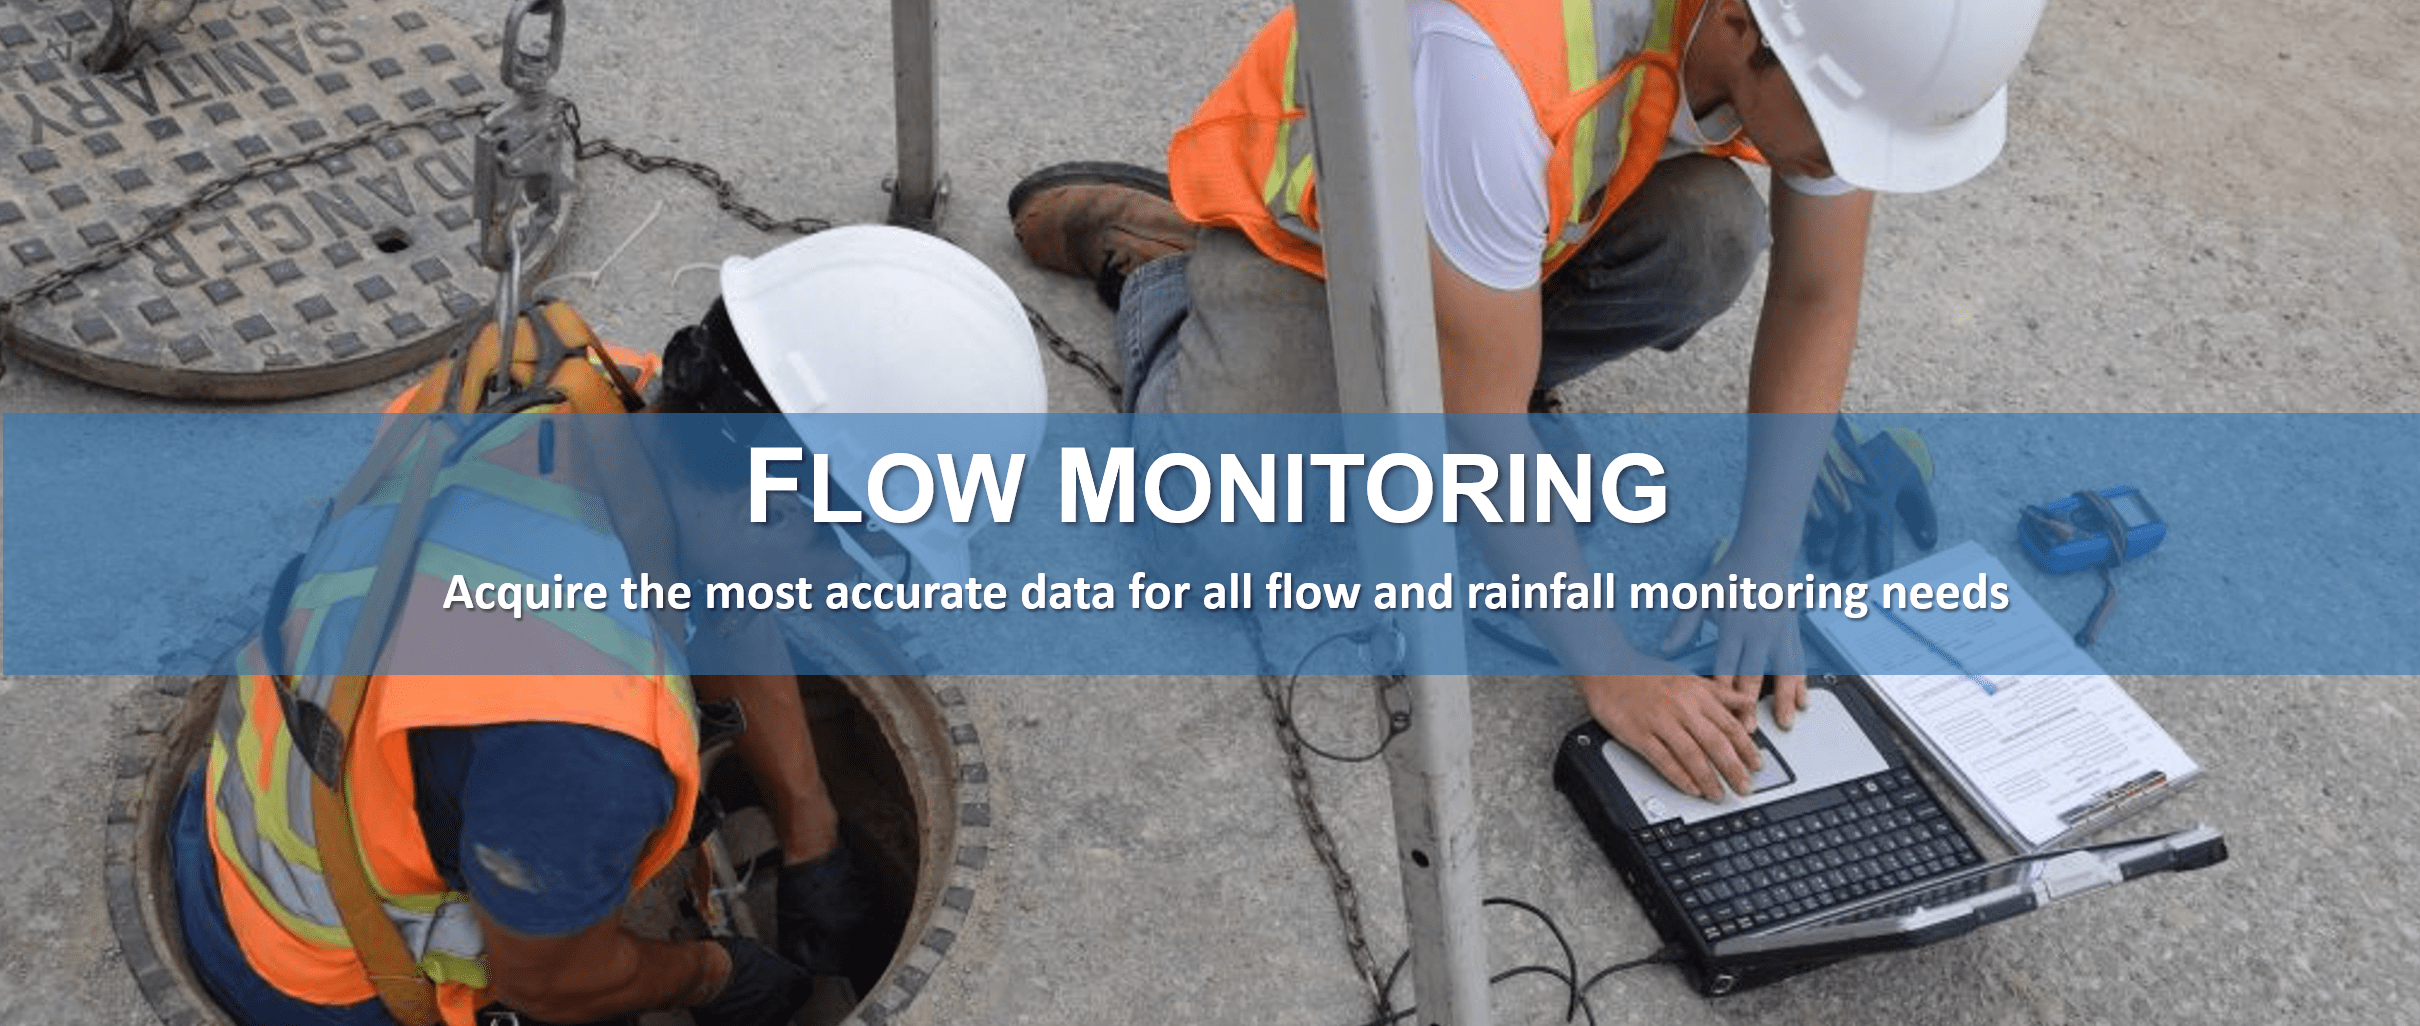 flow monitoring civica